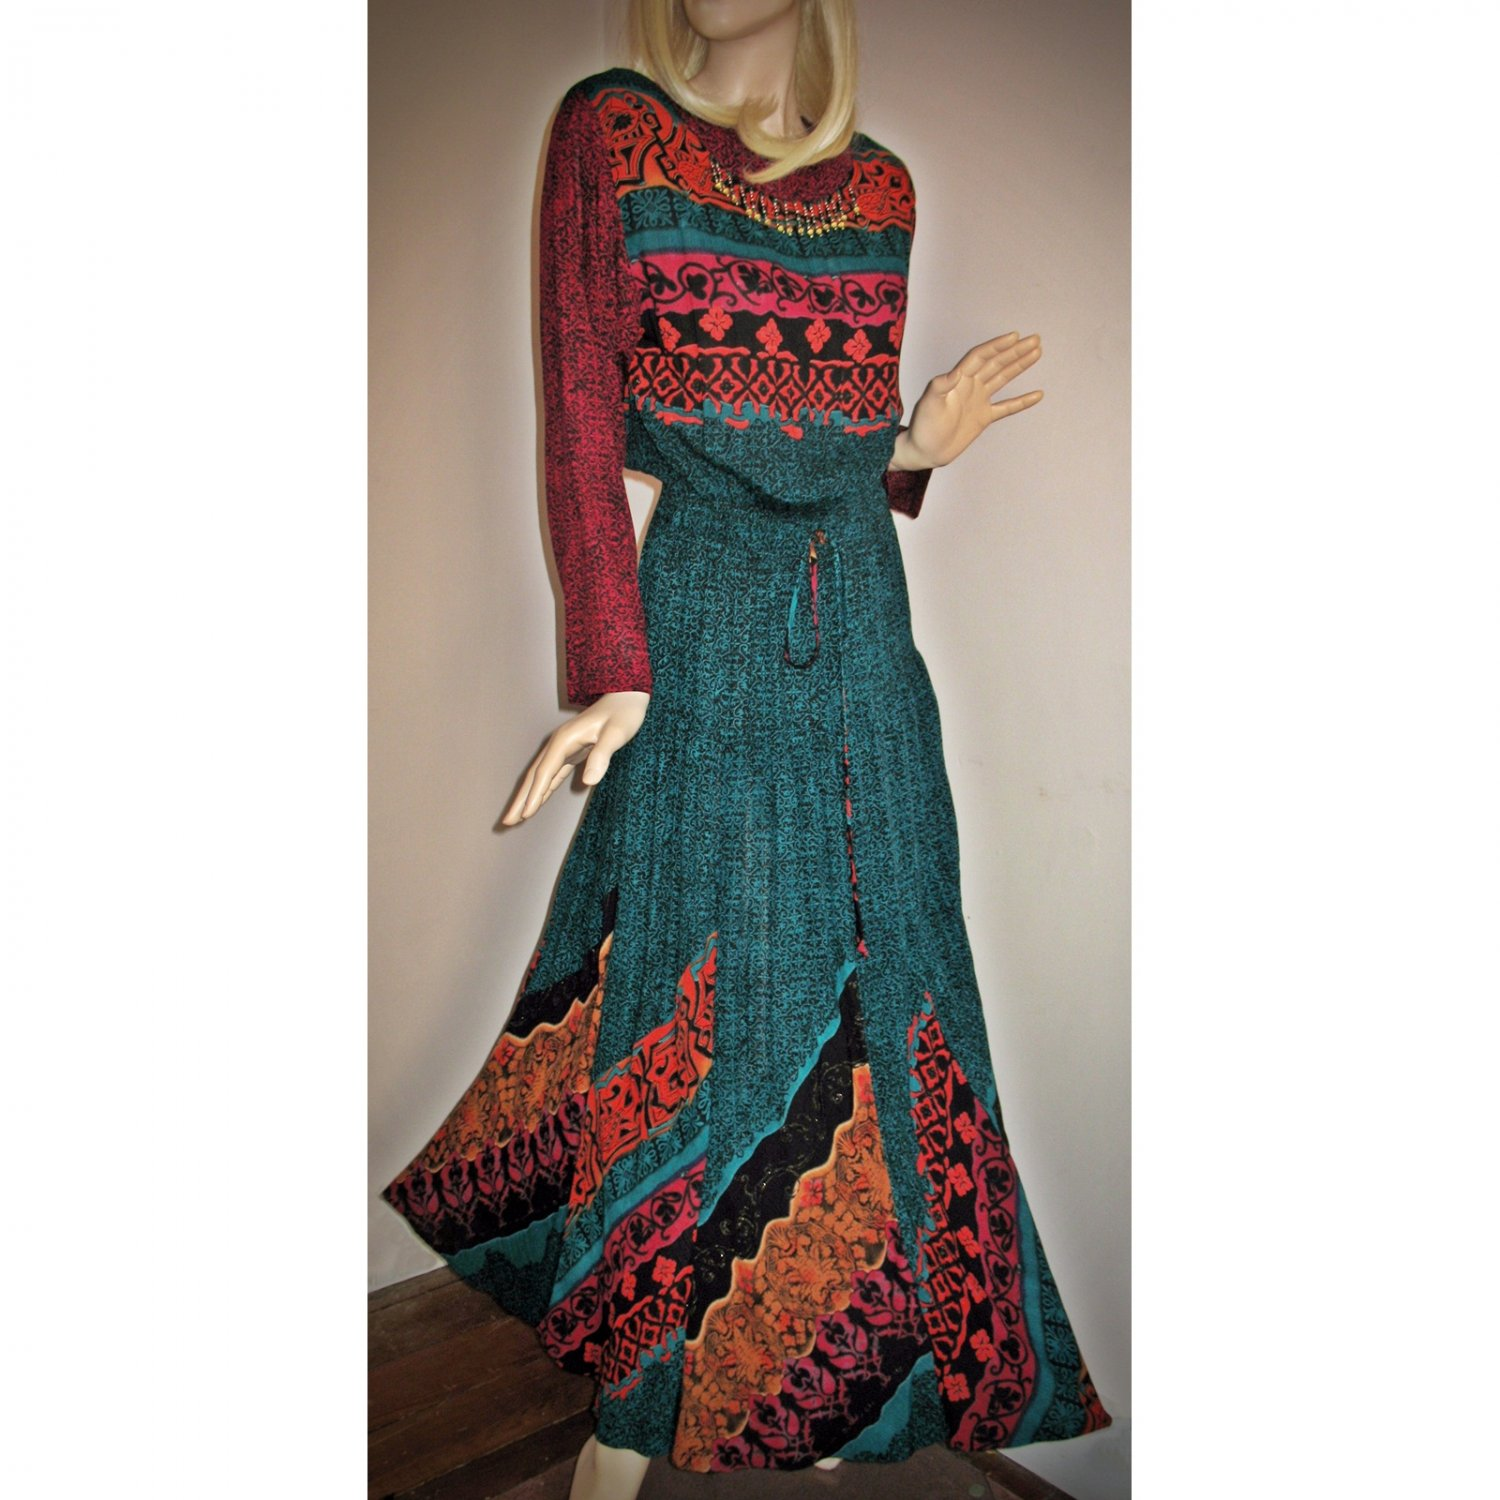 Vintage Hippie Boho Maxi Long Festival Dress Border Print